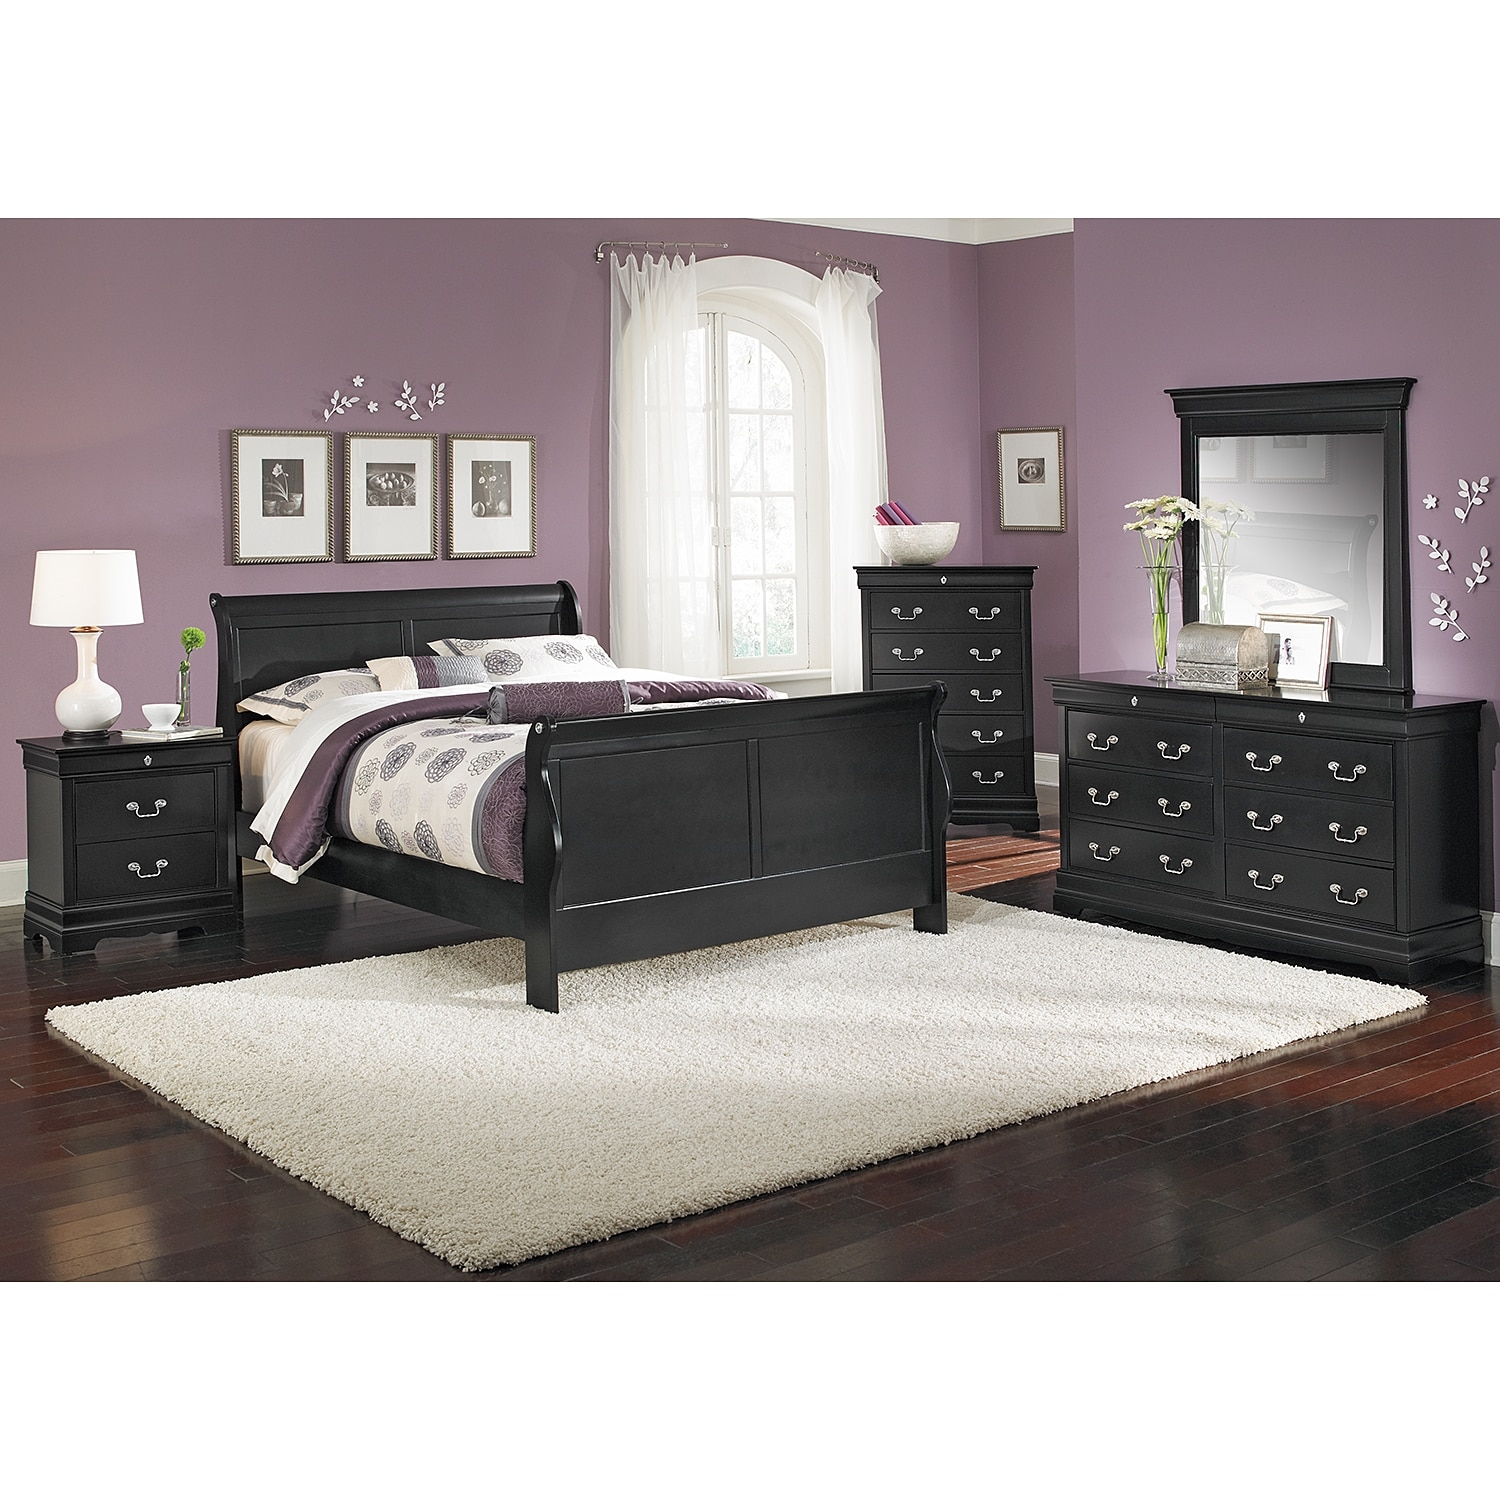 Neo classic black queen bed american signature furniture - Black queen bedroom furniture set ...